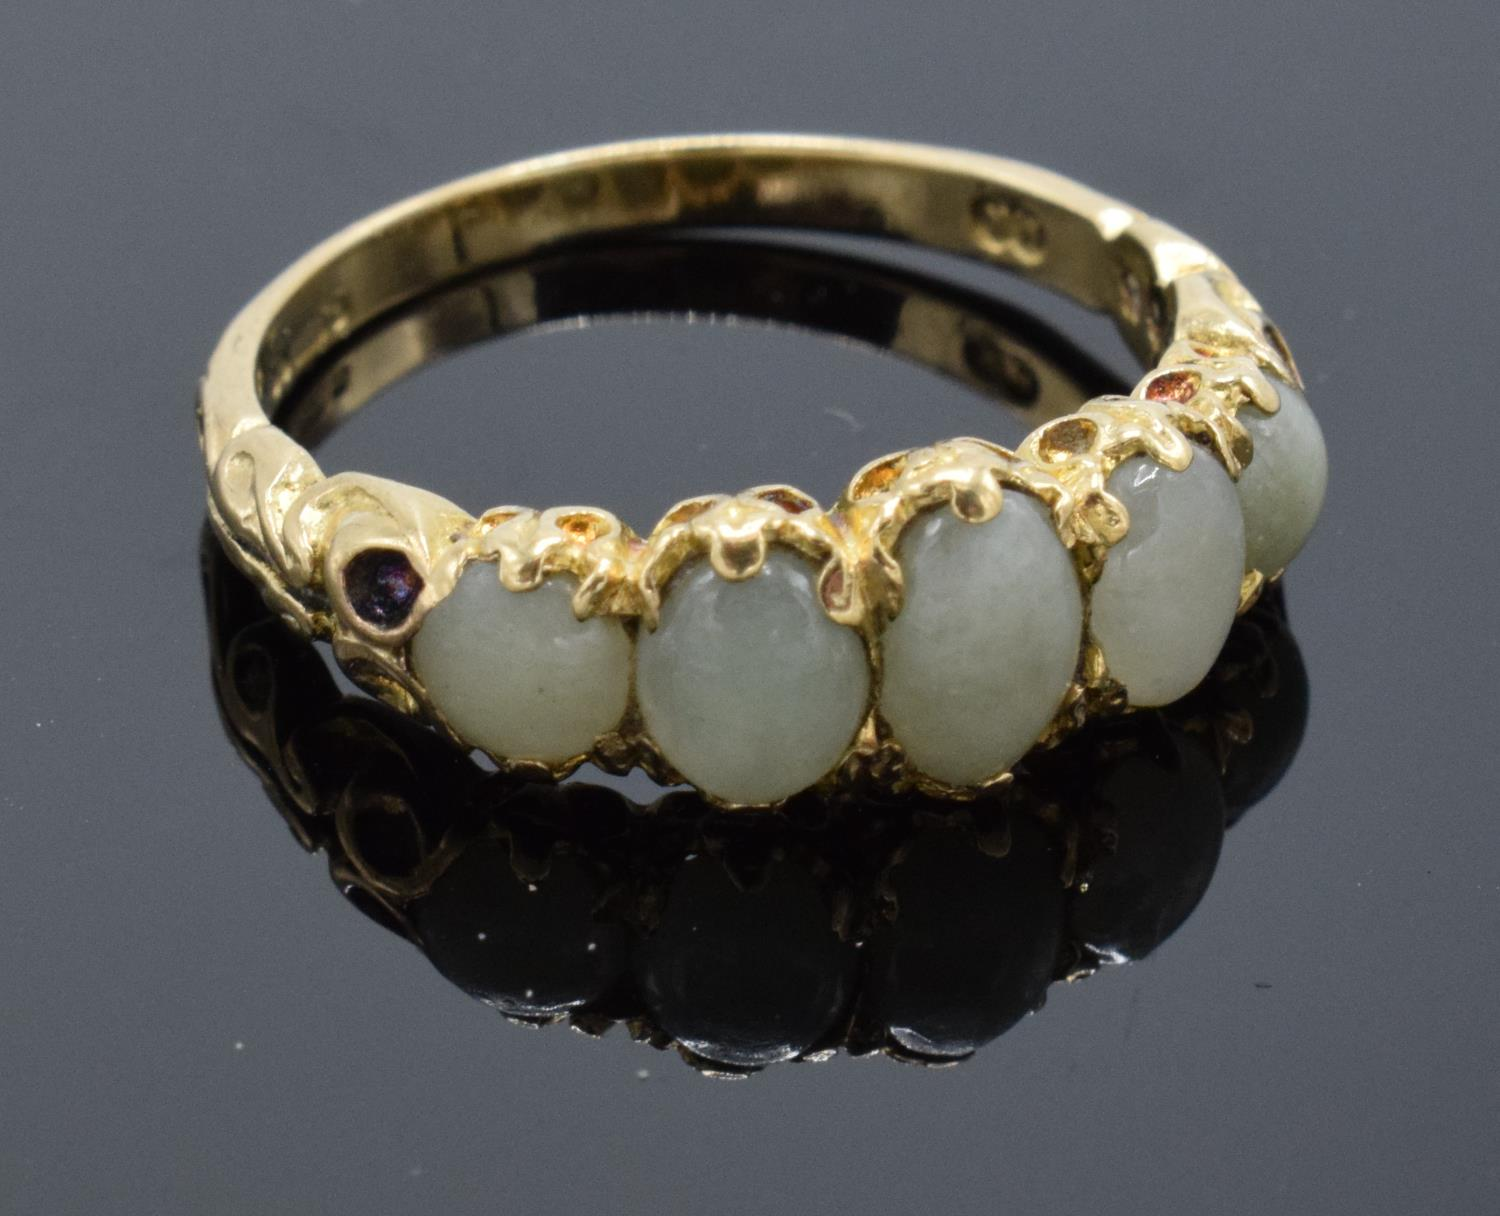 9ct gold ladies ring set with 5 opal stones, UK size N/O. Gross weight 2.6 grams.